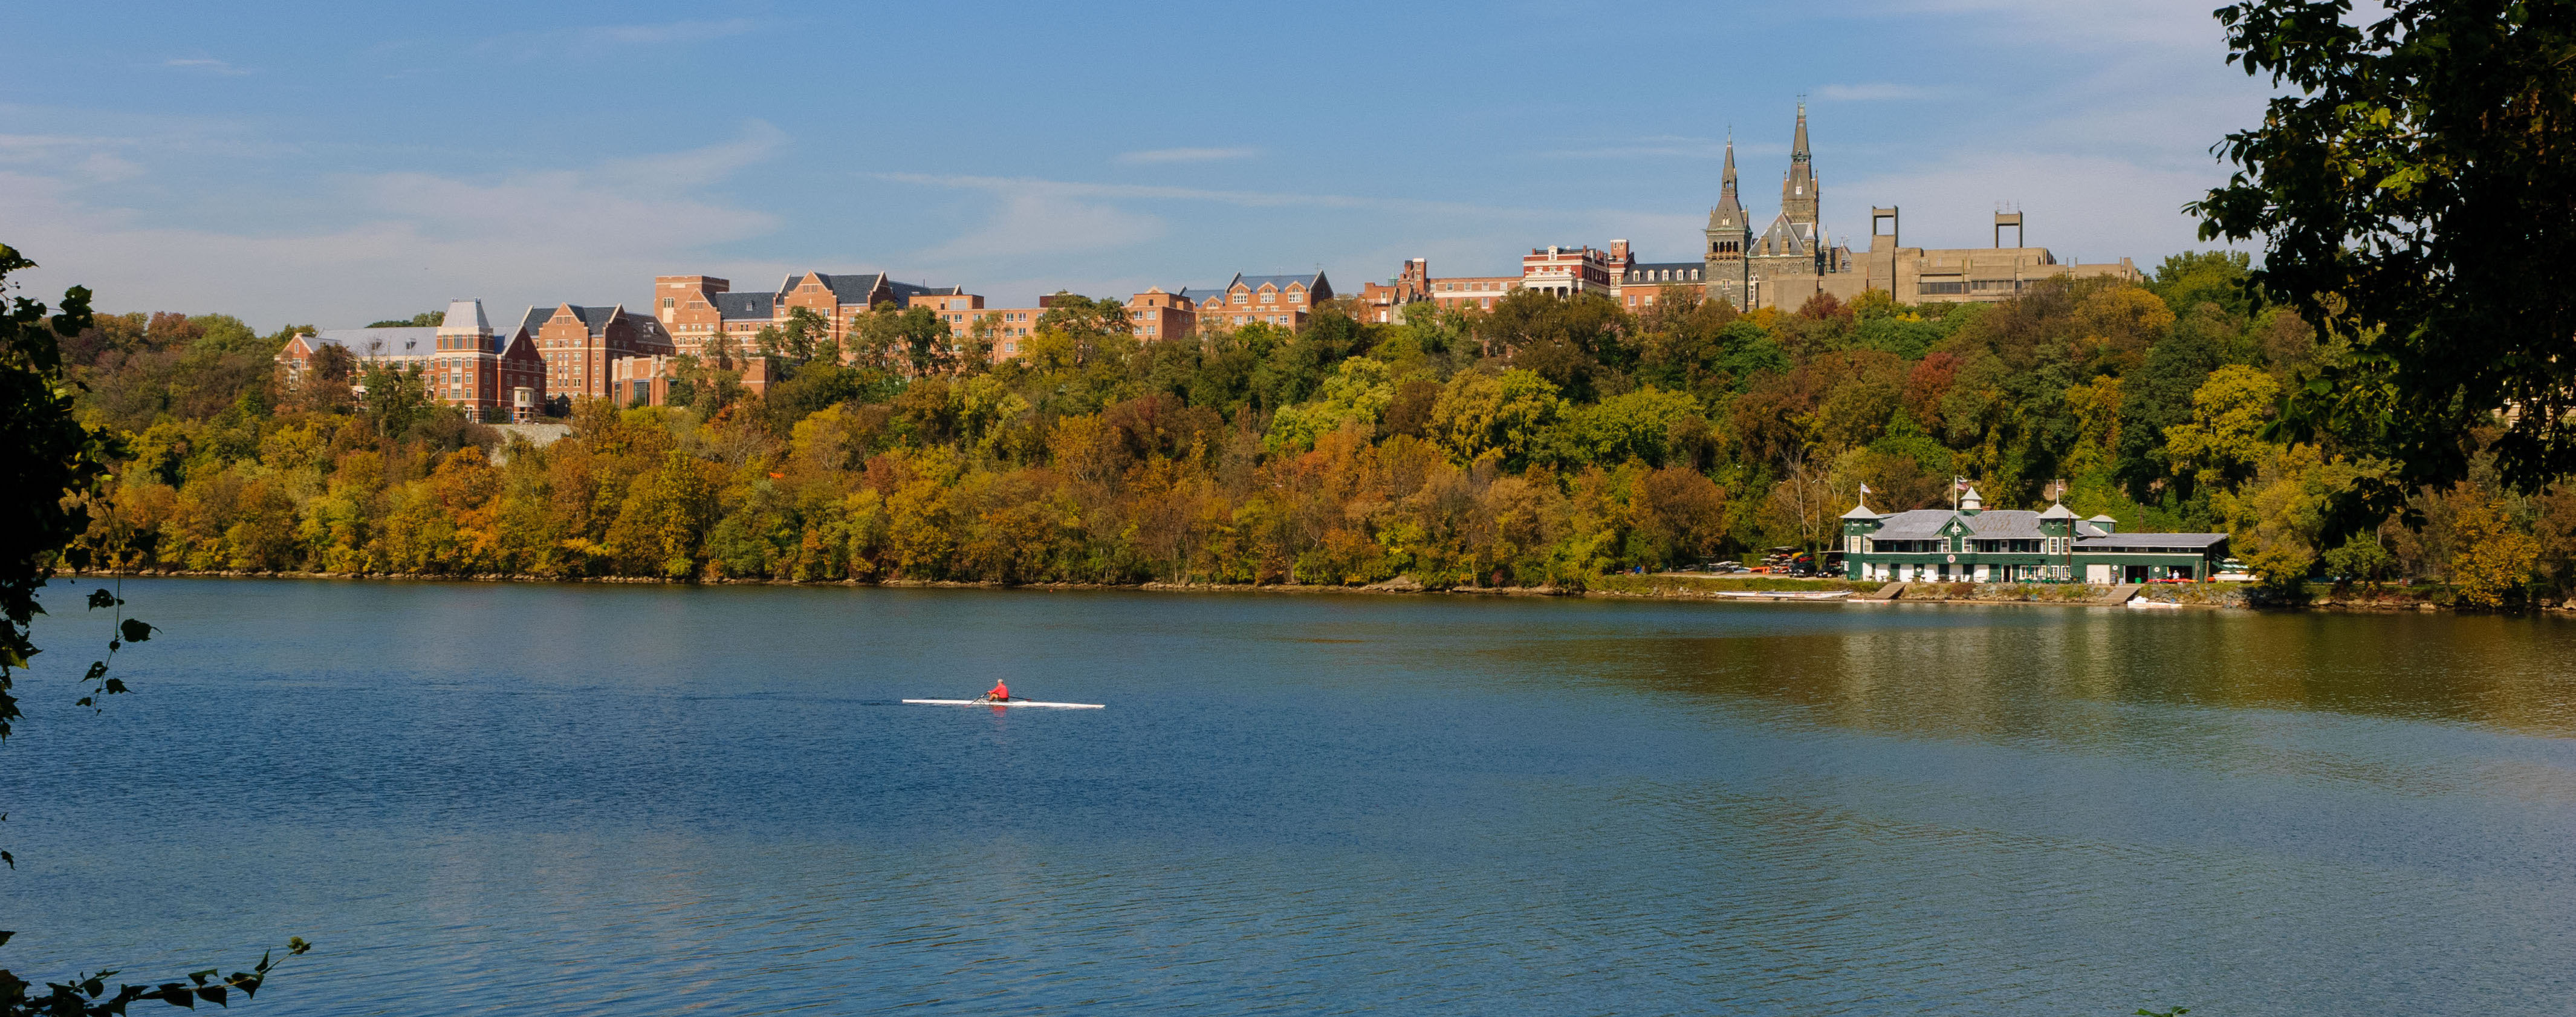 Potomac River with the Georgetown University campus in the background